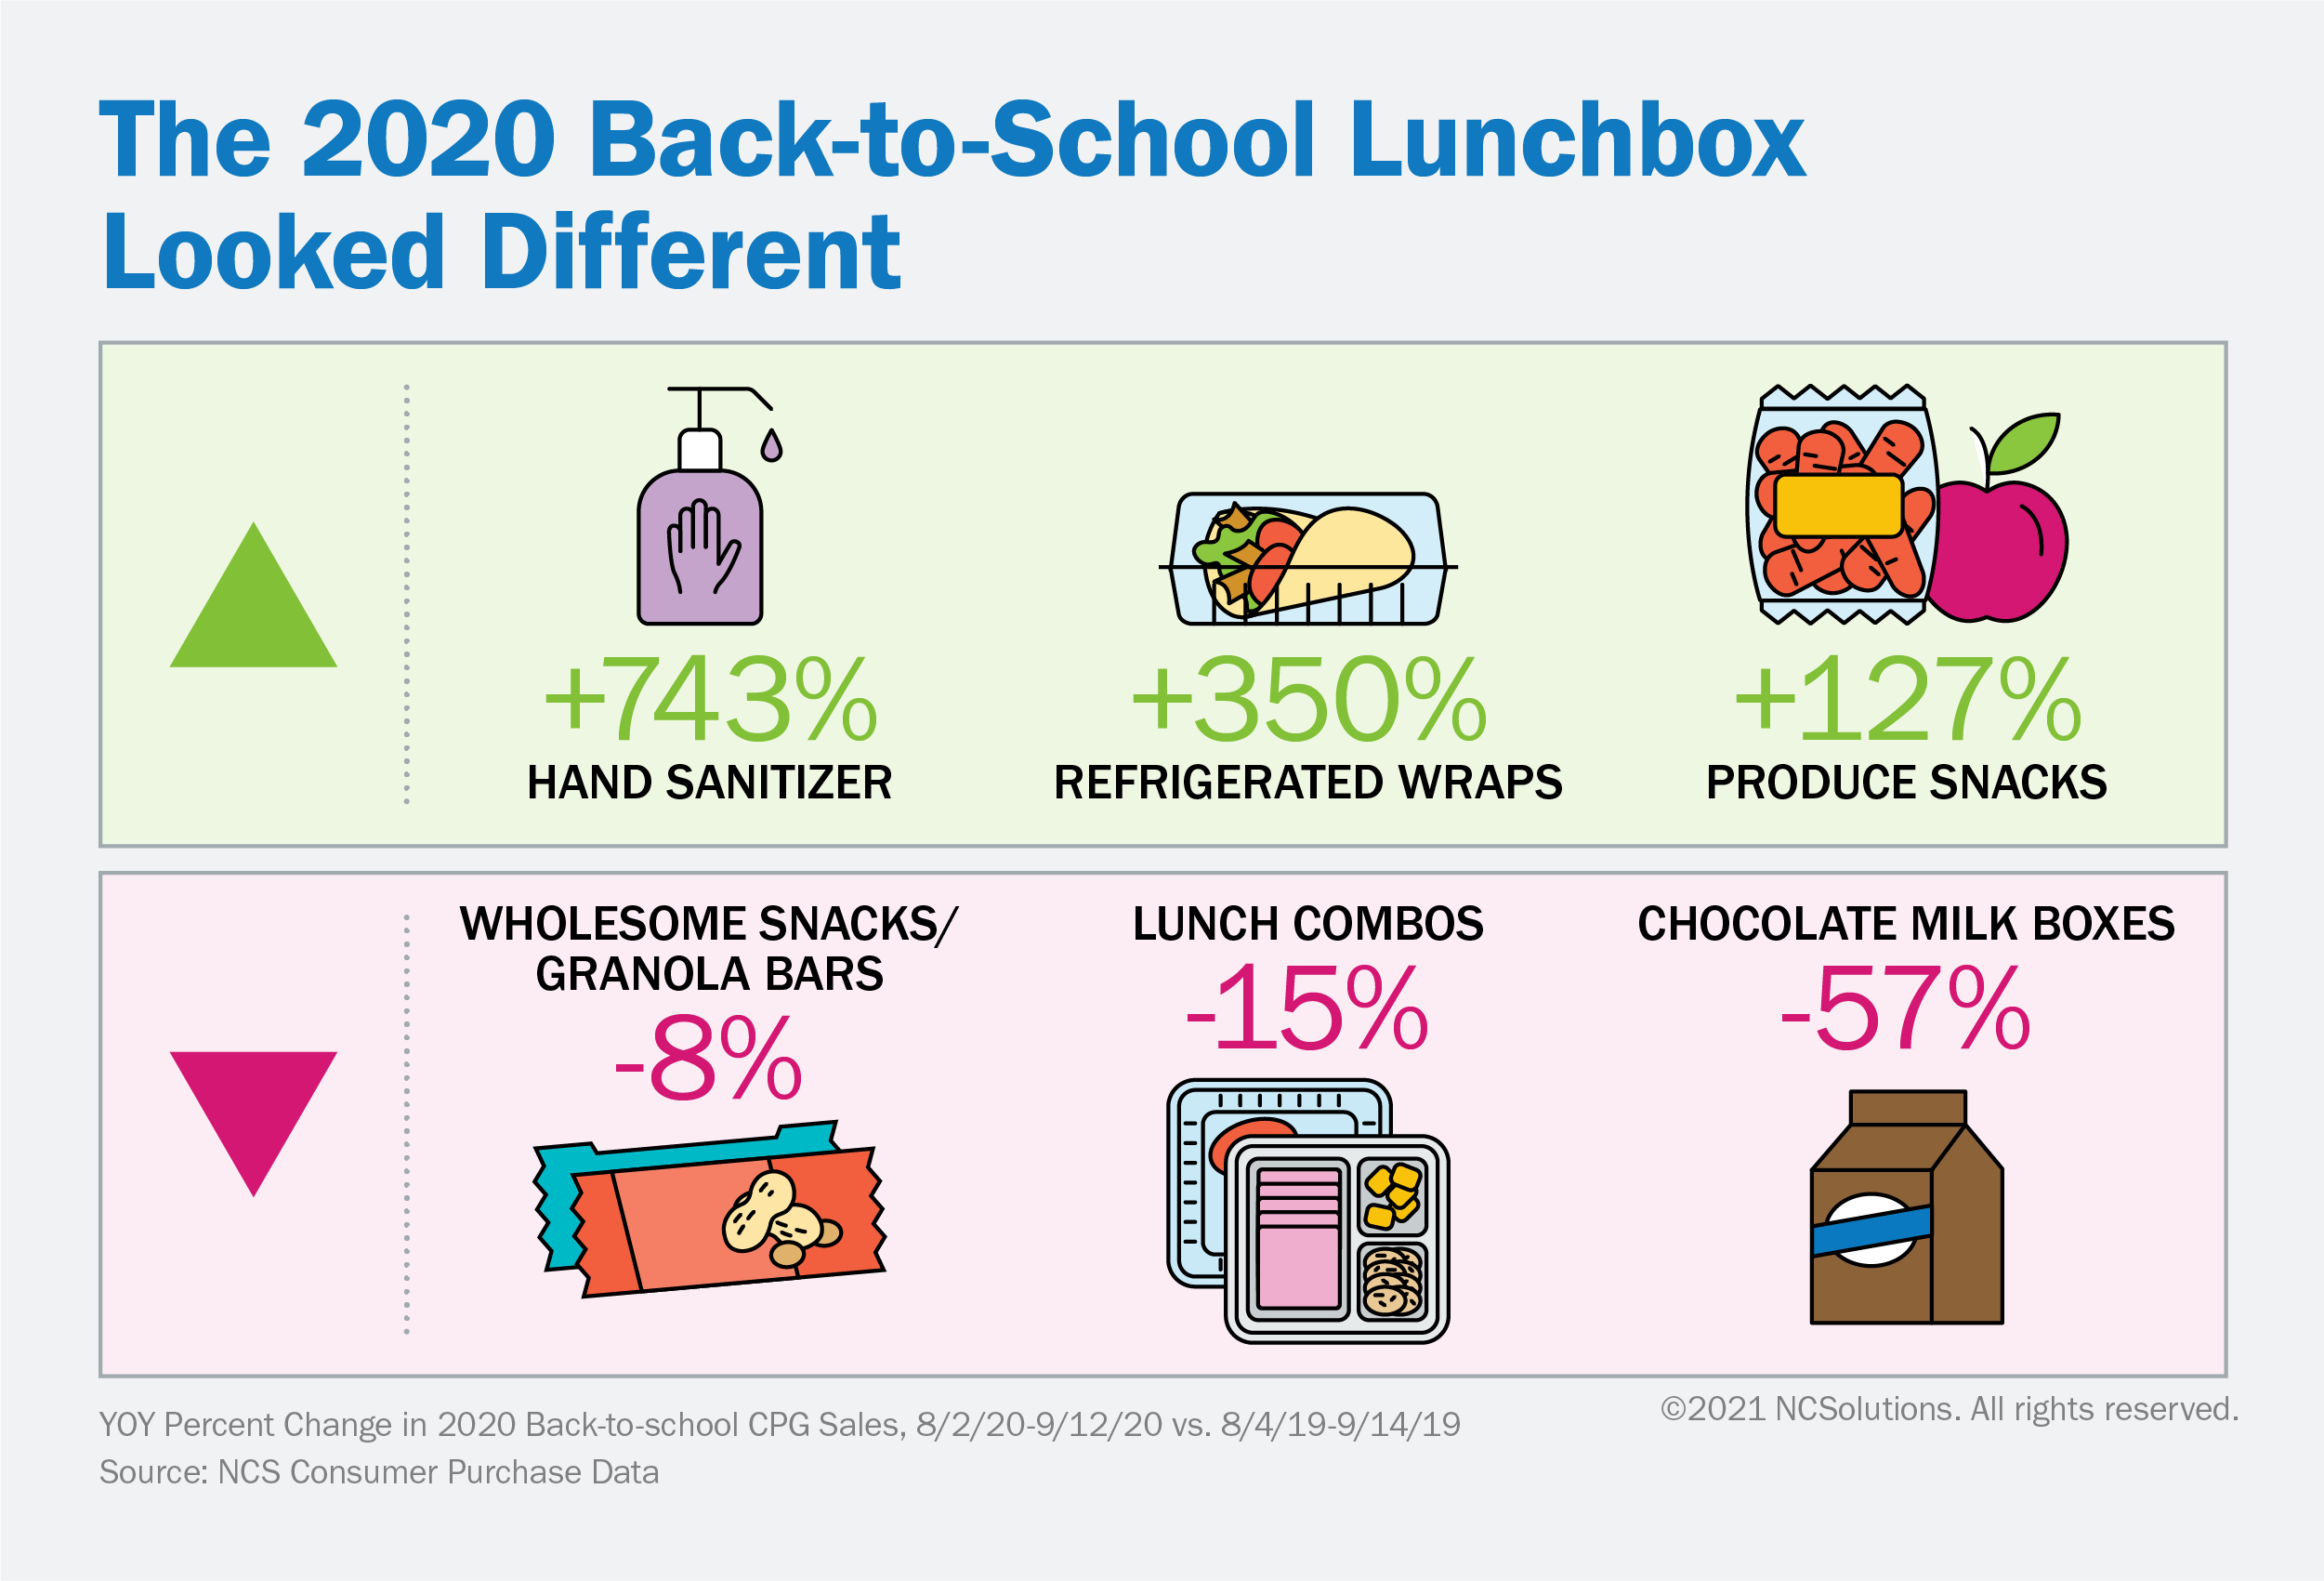 The 2020 Back-to-School Lunchbox Looked Different